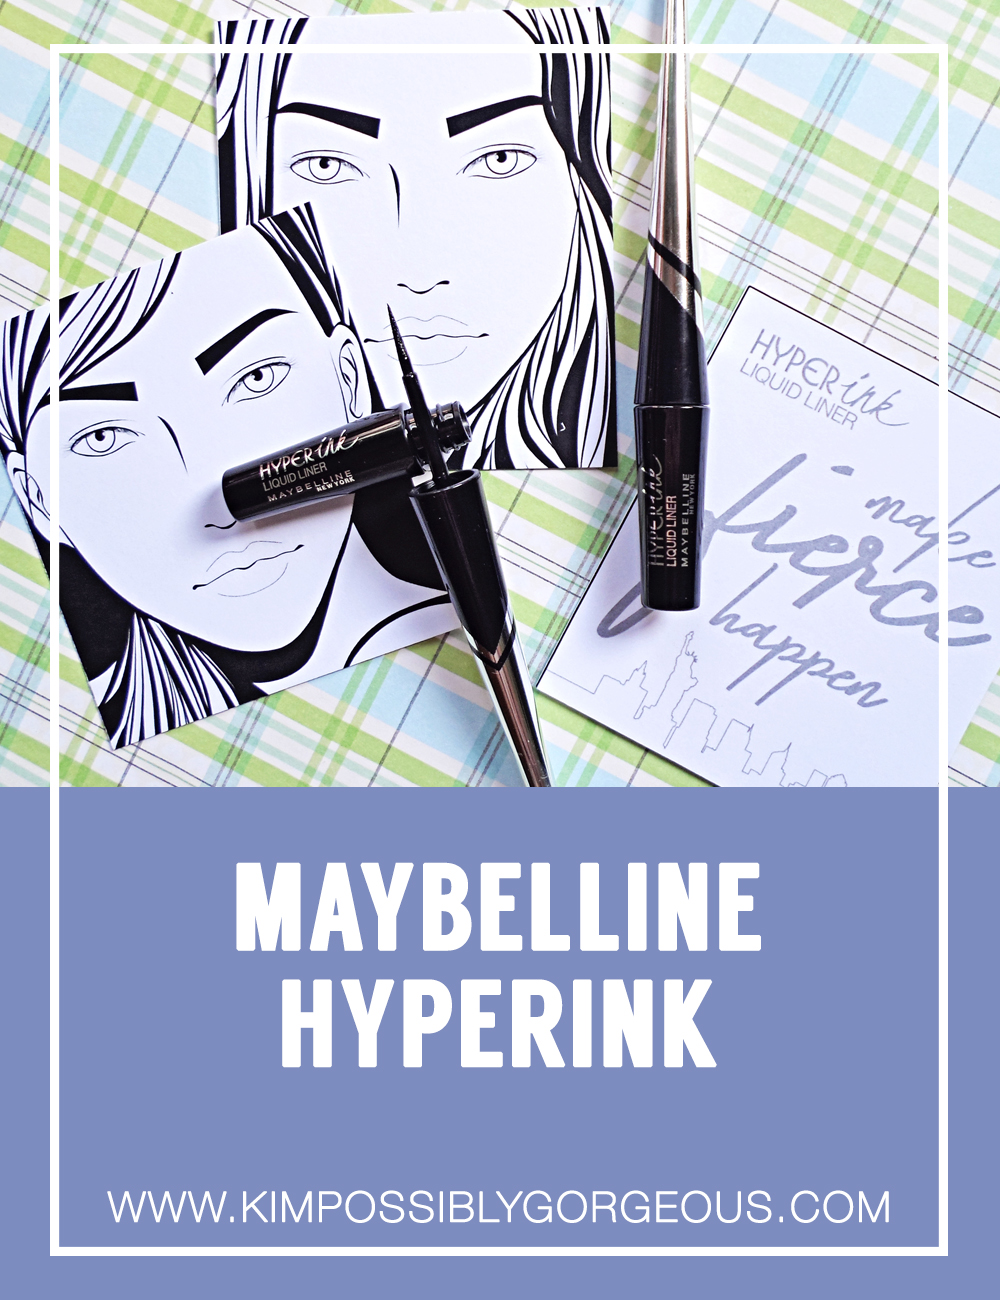 Easiest To Use Liquid Eyeliner Yet Maybelline Hyperink Liner Hyper Ink Eye Black You Have Already Heard The Buzz No Hype About New From